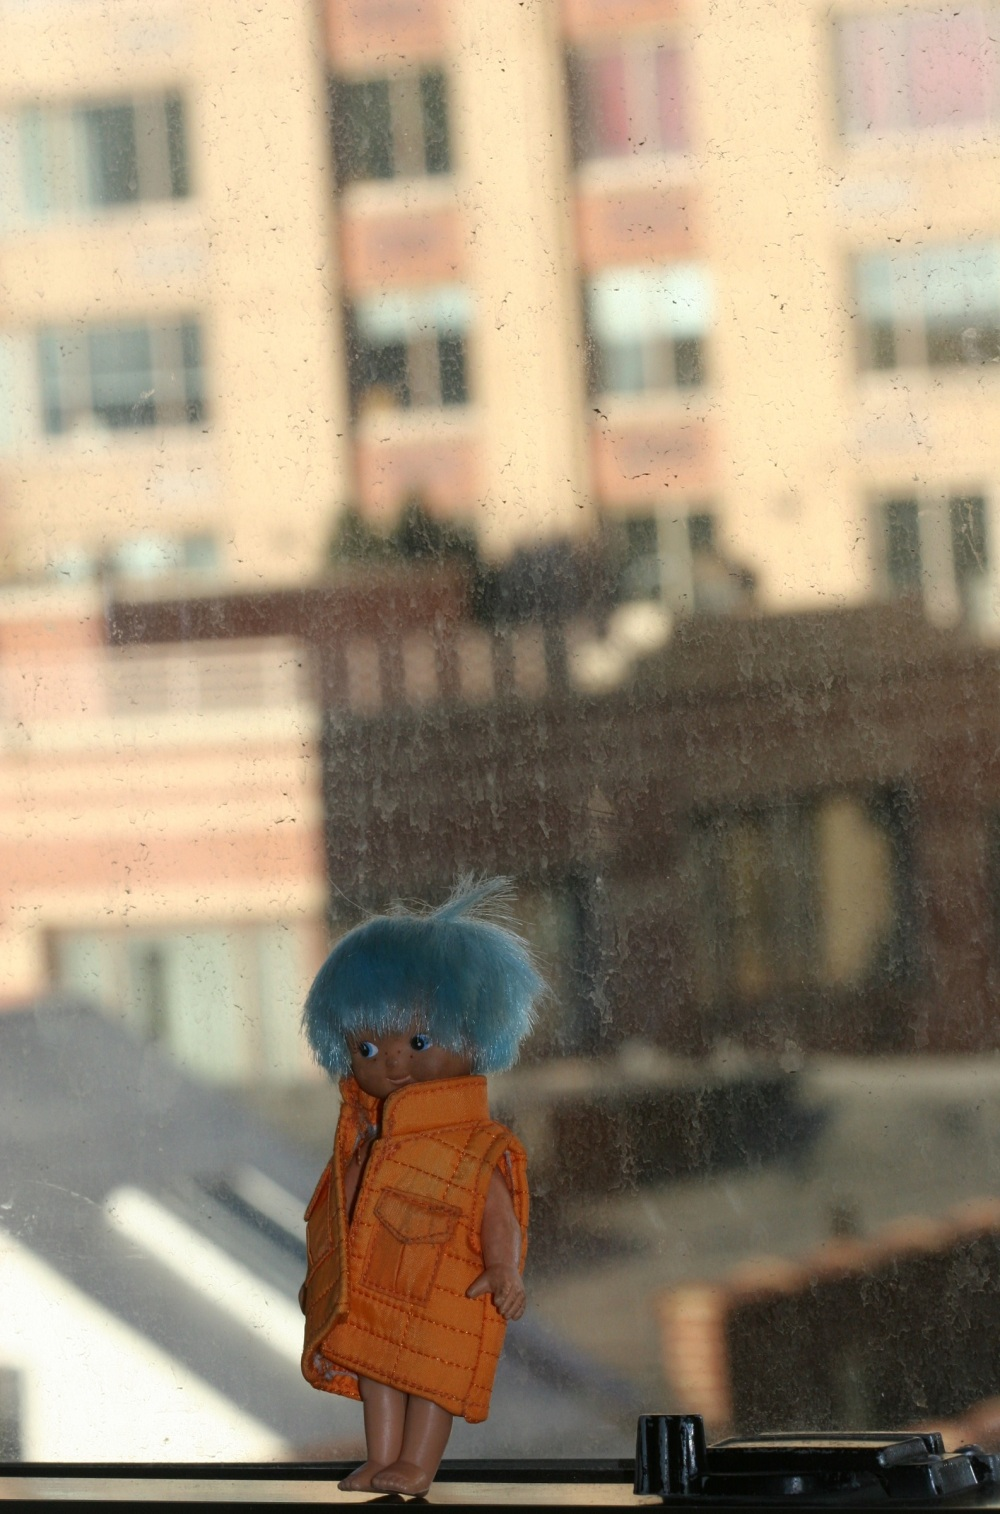 A Blue Haired Doll Shot In Chicago...